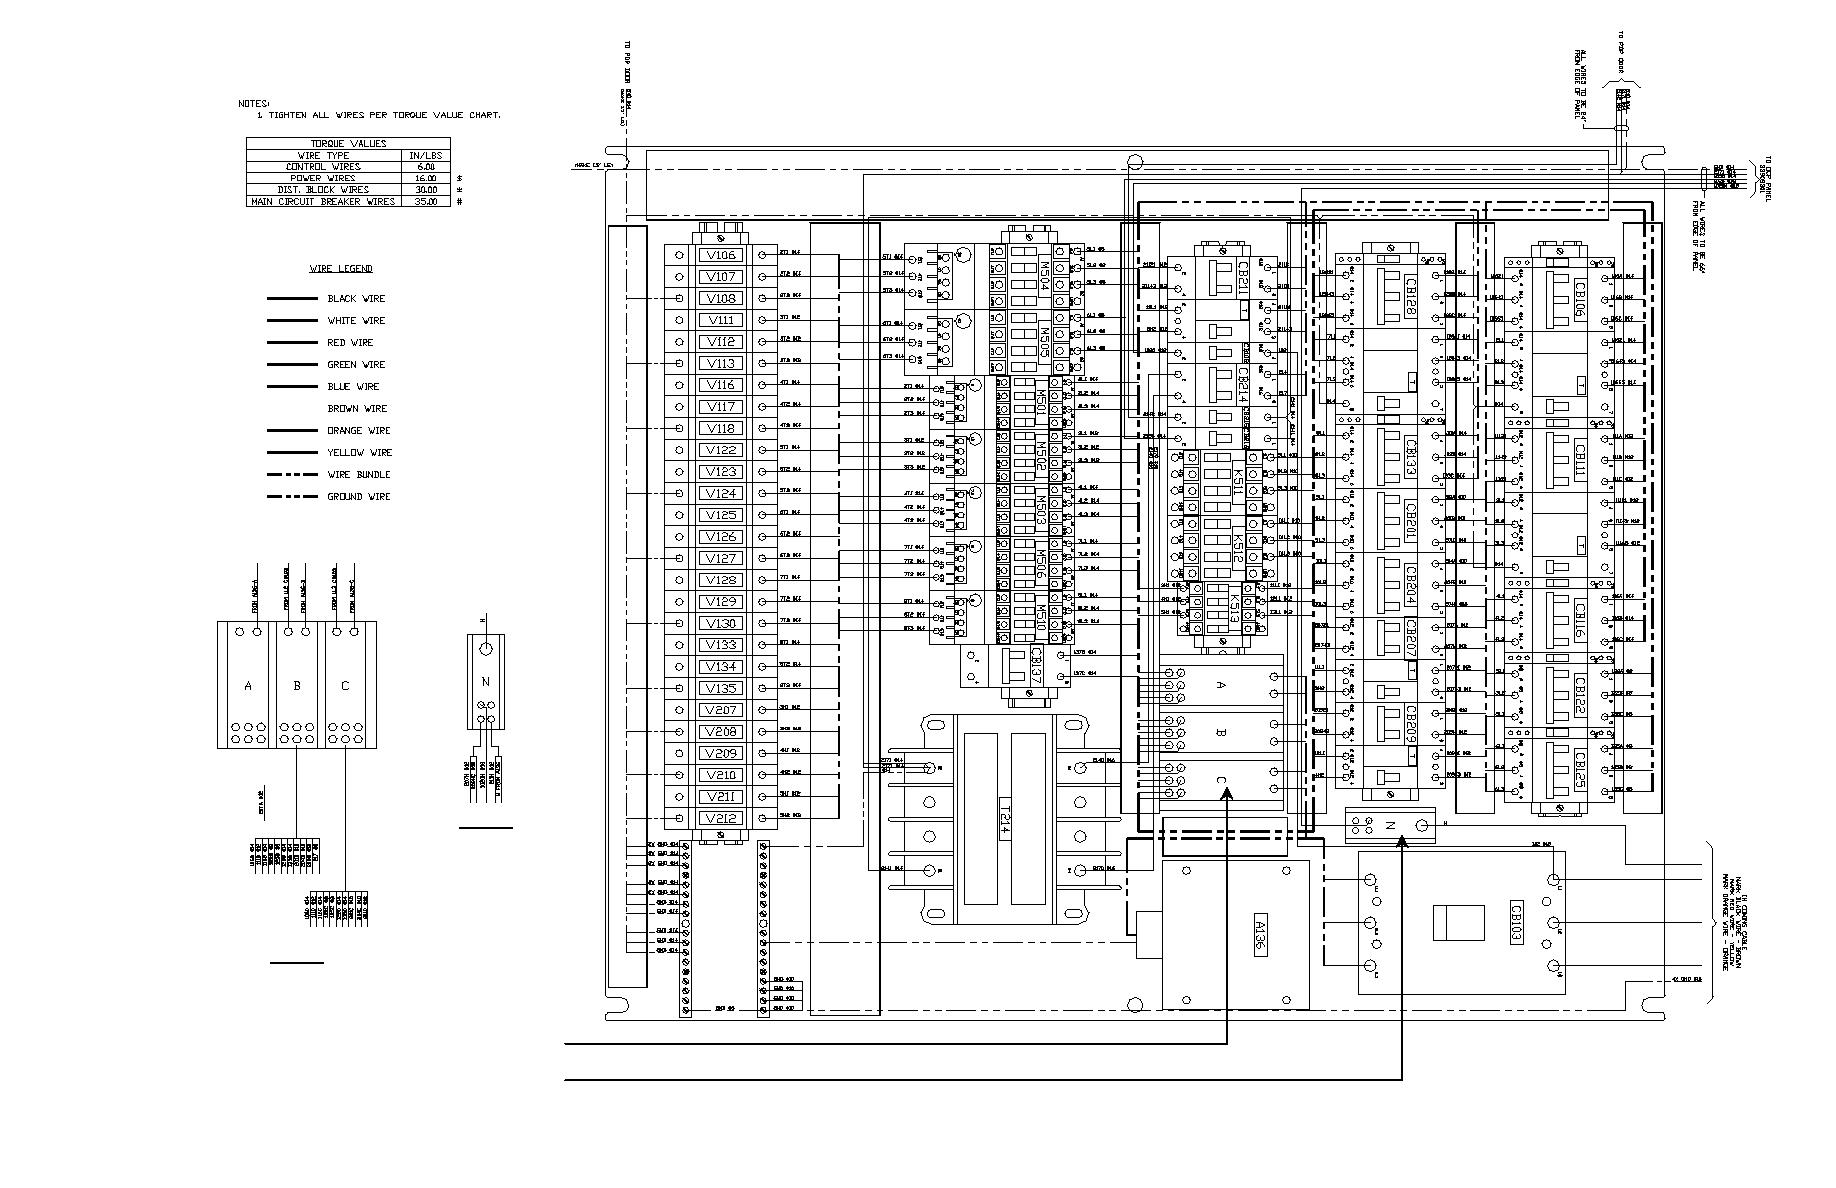 Figure 4 Twps Point To Point Wiring Diagrams Pdp Sub Panel Power Sheet 1 Of 4